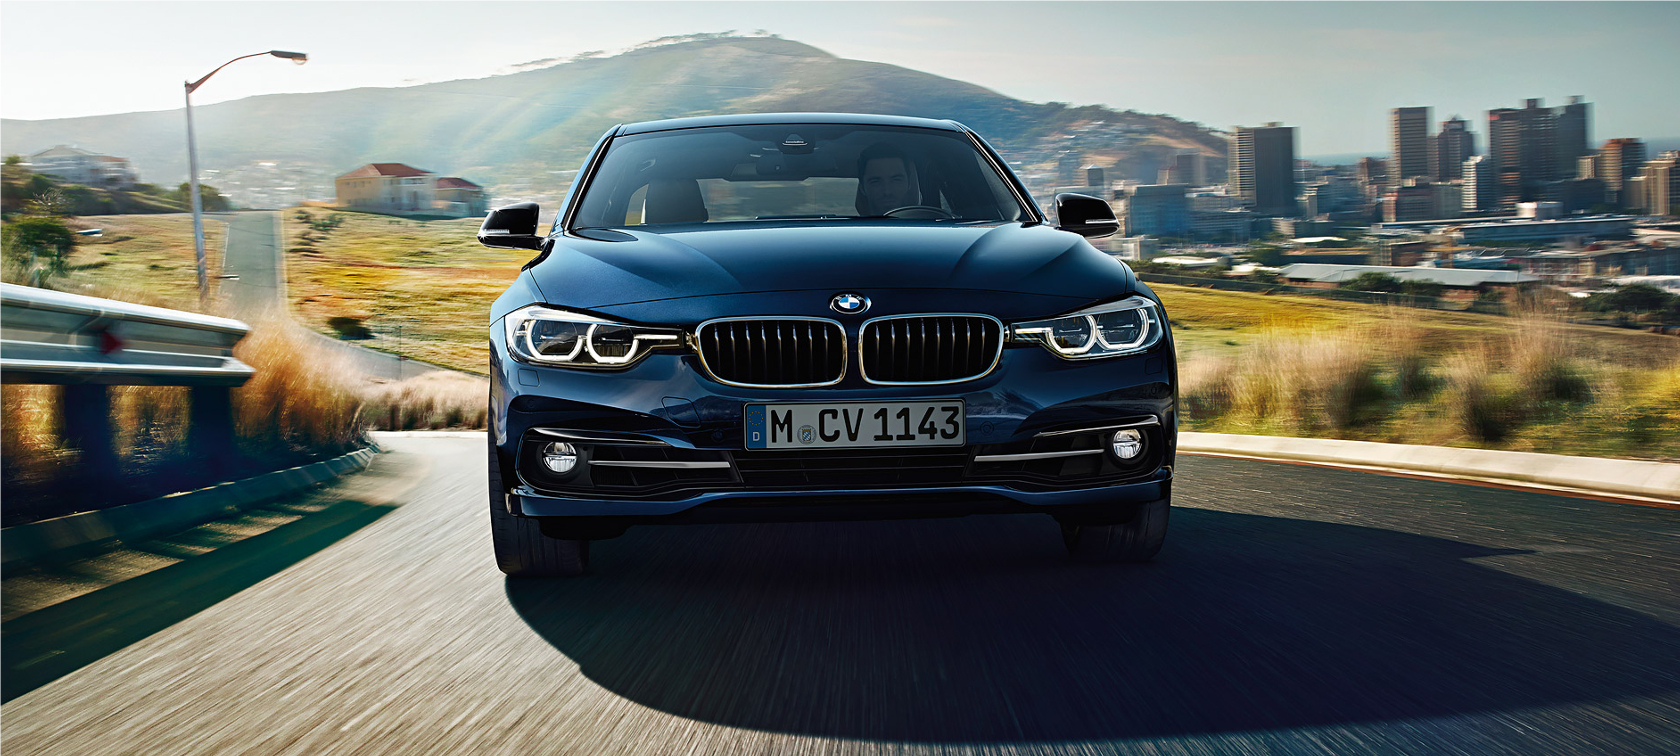 BMW Egypt Website: Home Page